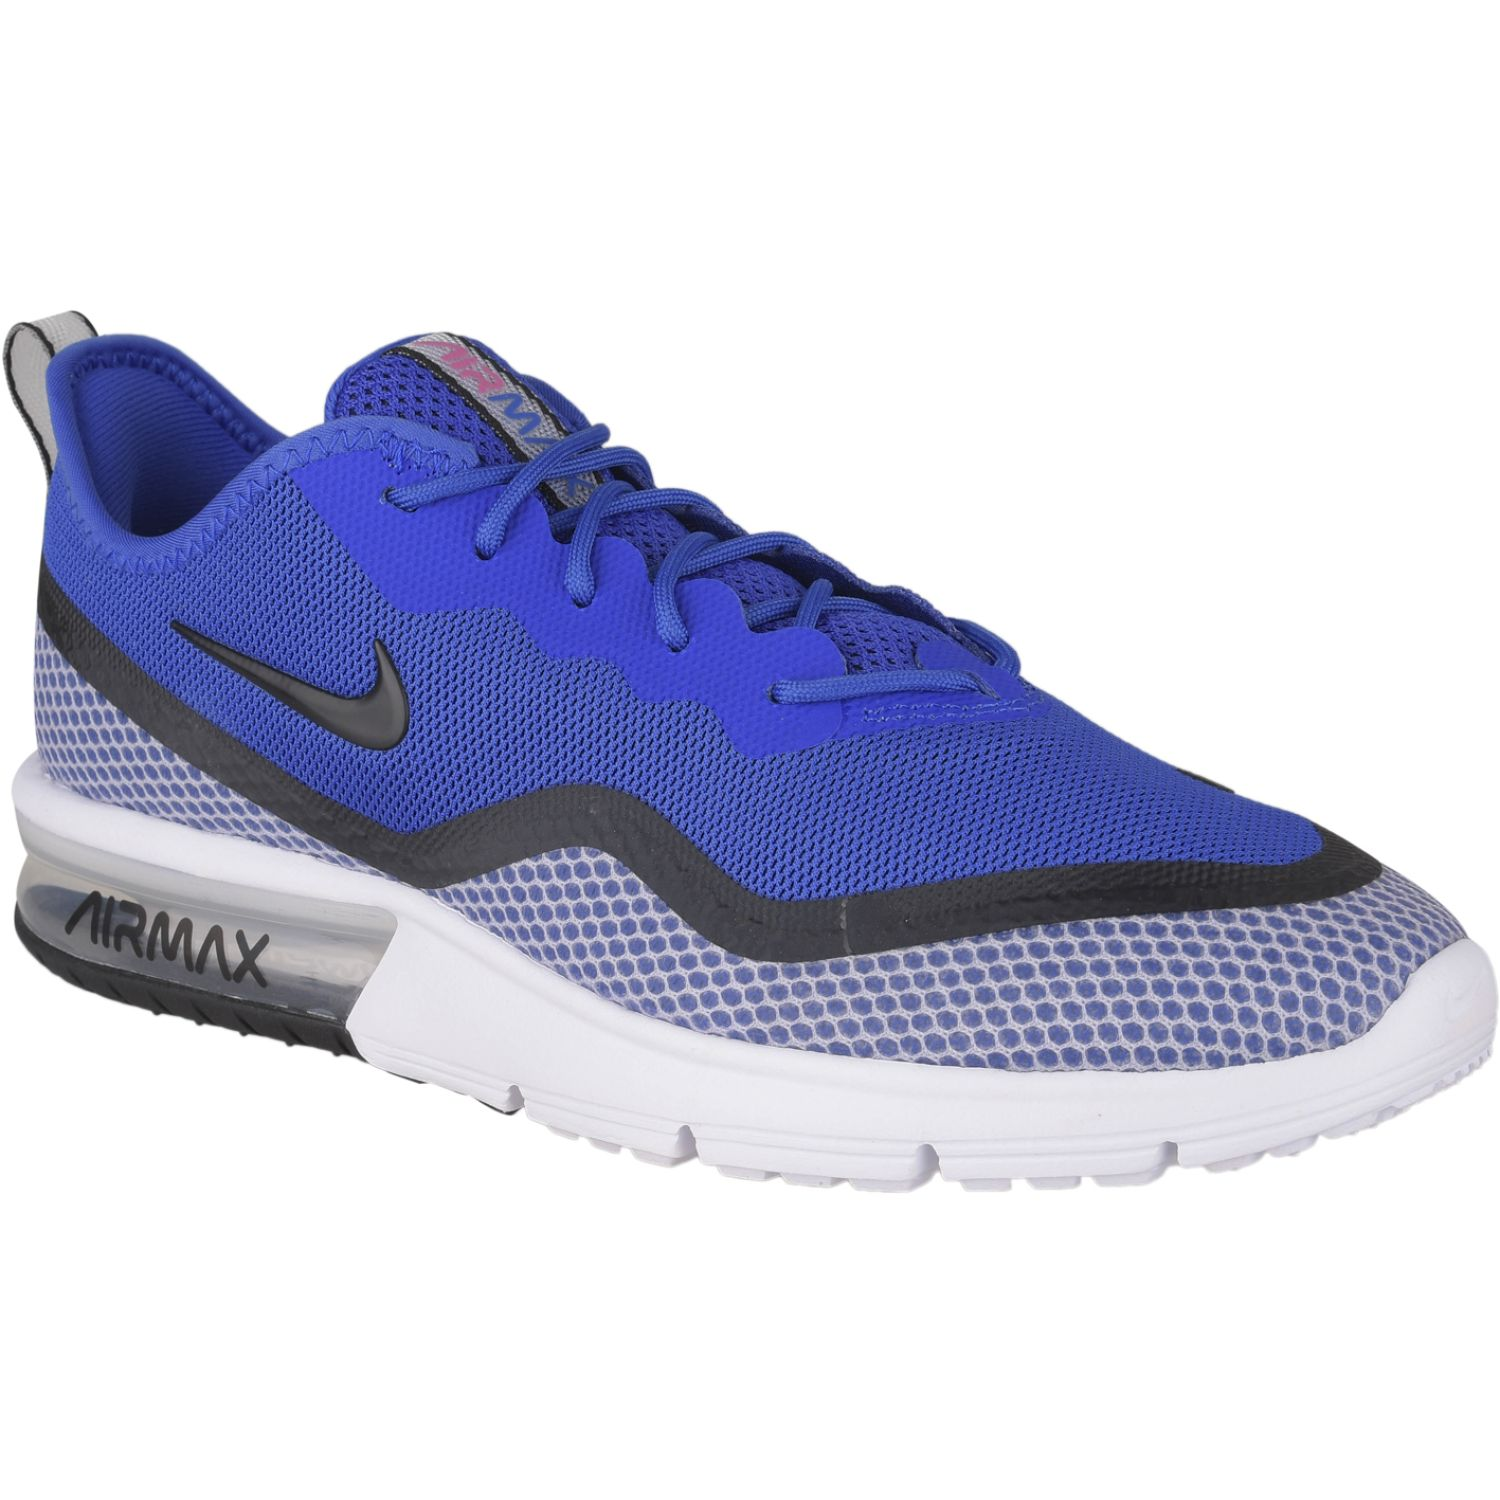 Zapatillas Nike NIKE AIR MAX SEQUENT 4.5 SE BQ8823 100